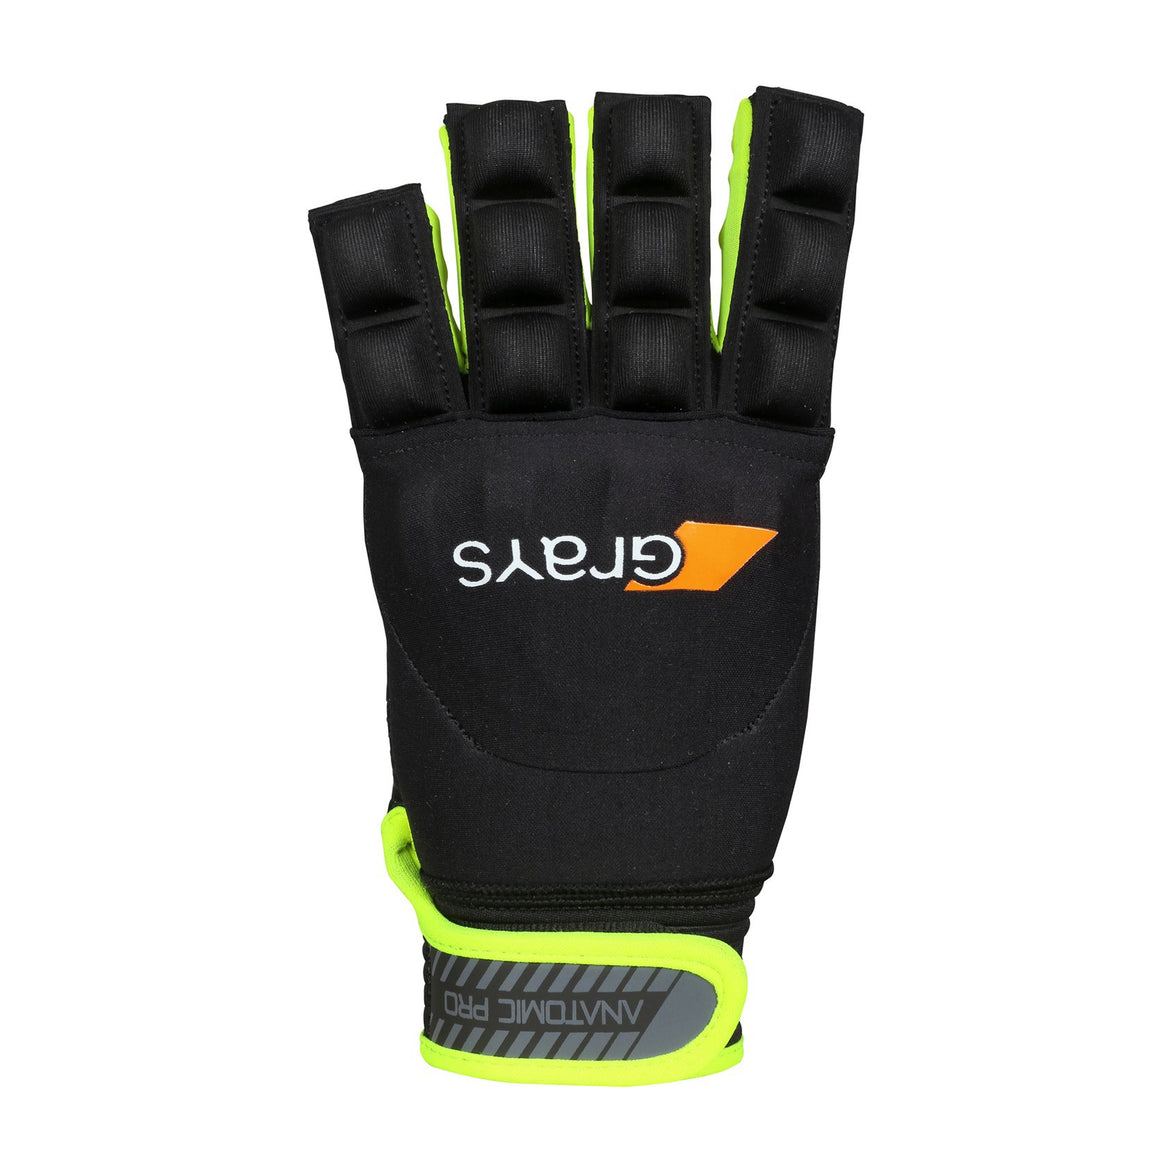 Anatomic Pro Glove L/H in Black & Fluo Yellow